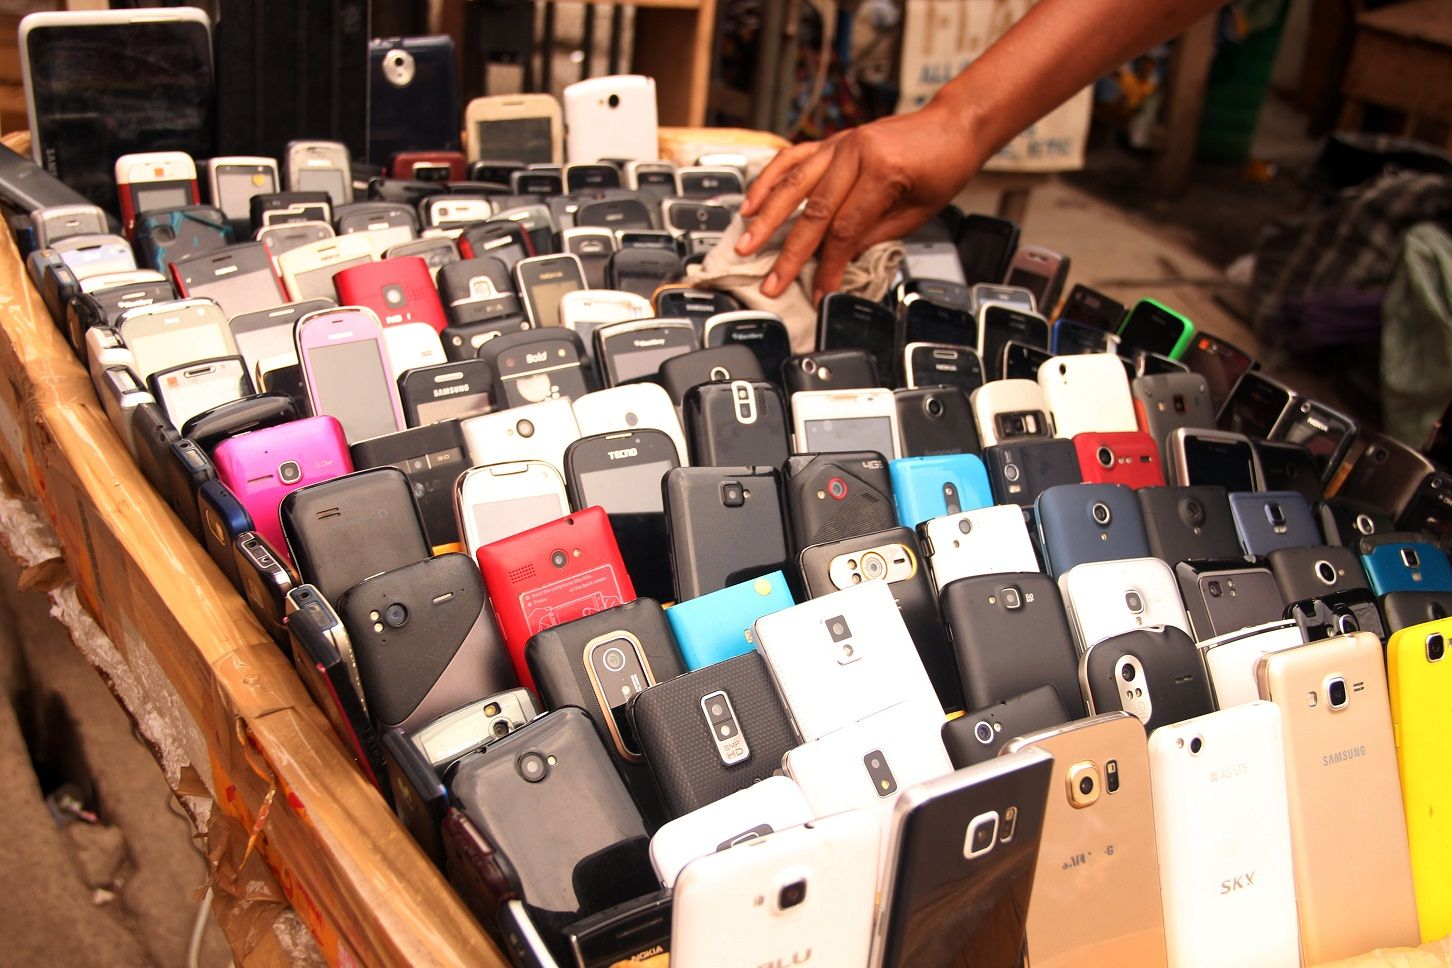 Buying 'used' mobile phones? This is what you need to know